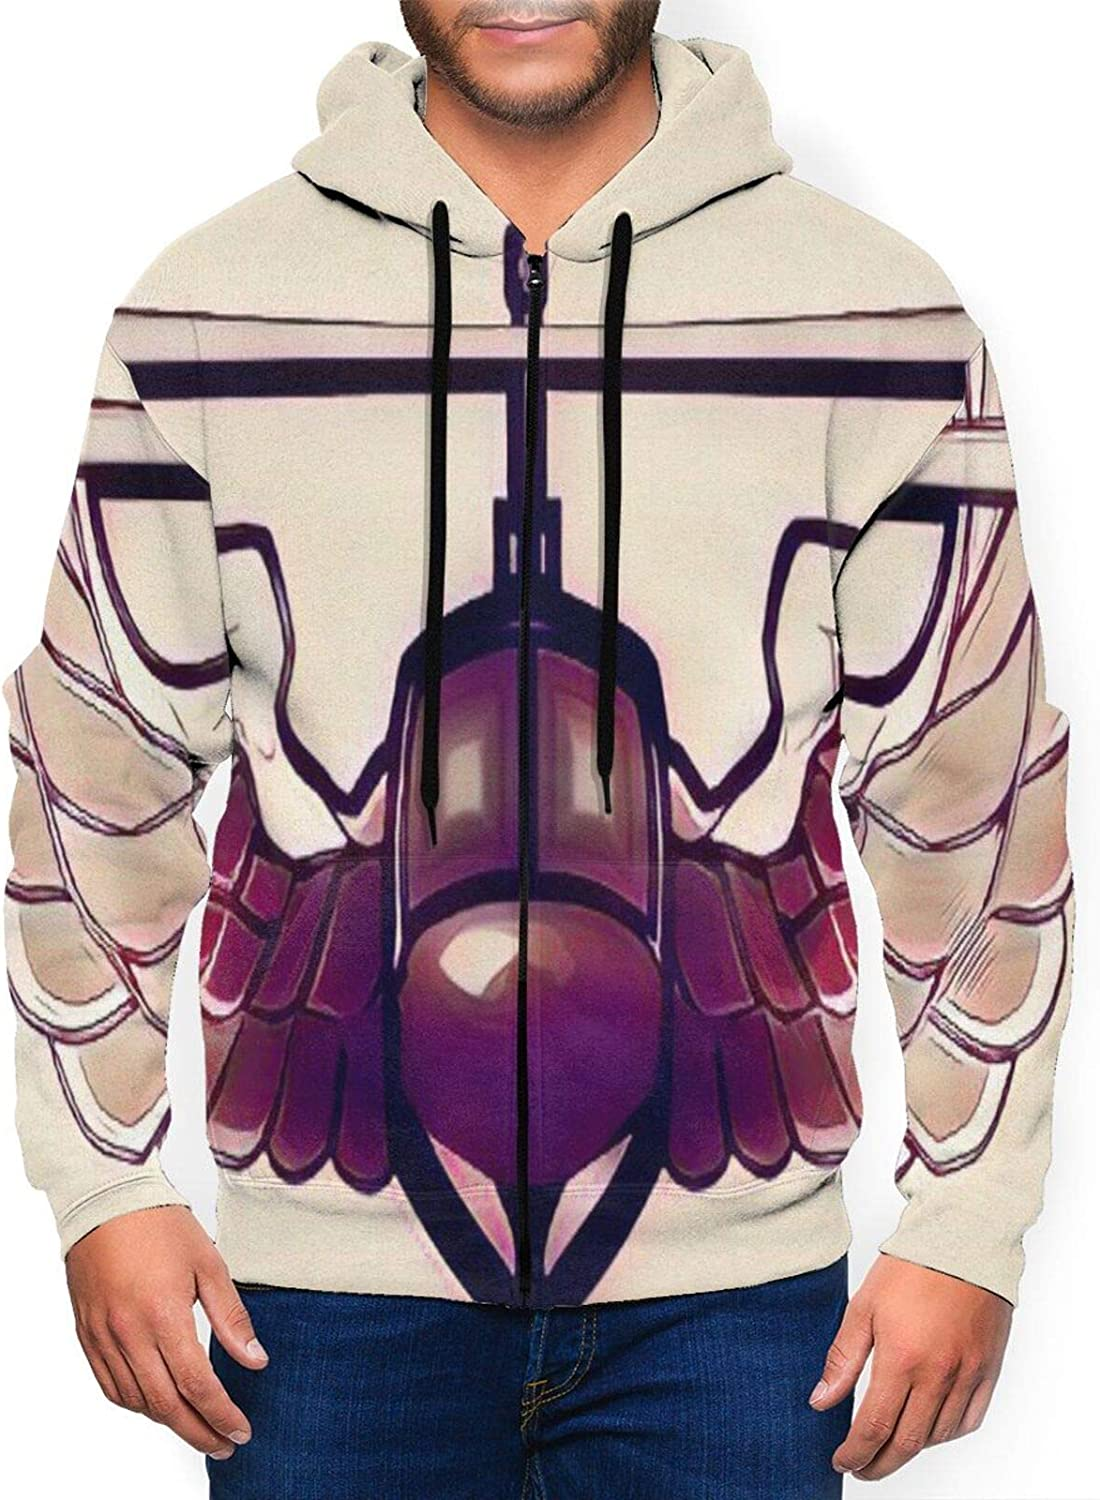 Men'S Full Zip Hoodie Proud Army Wings S Full-Zip Phoenix Mall Special price for a limited time Assault 3d Air